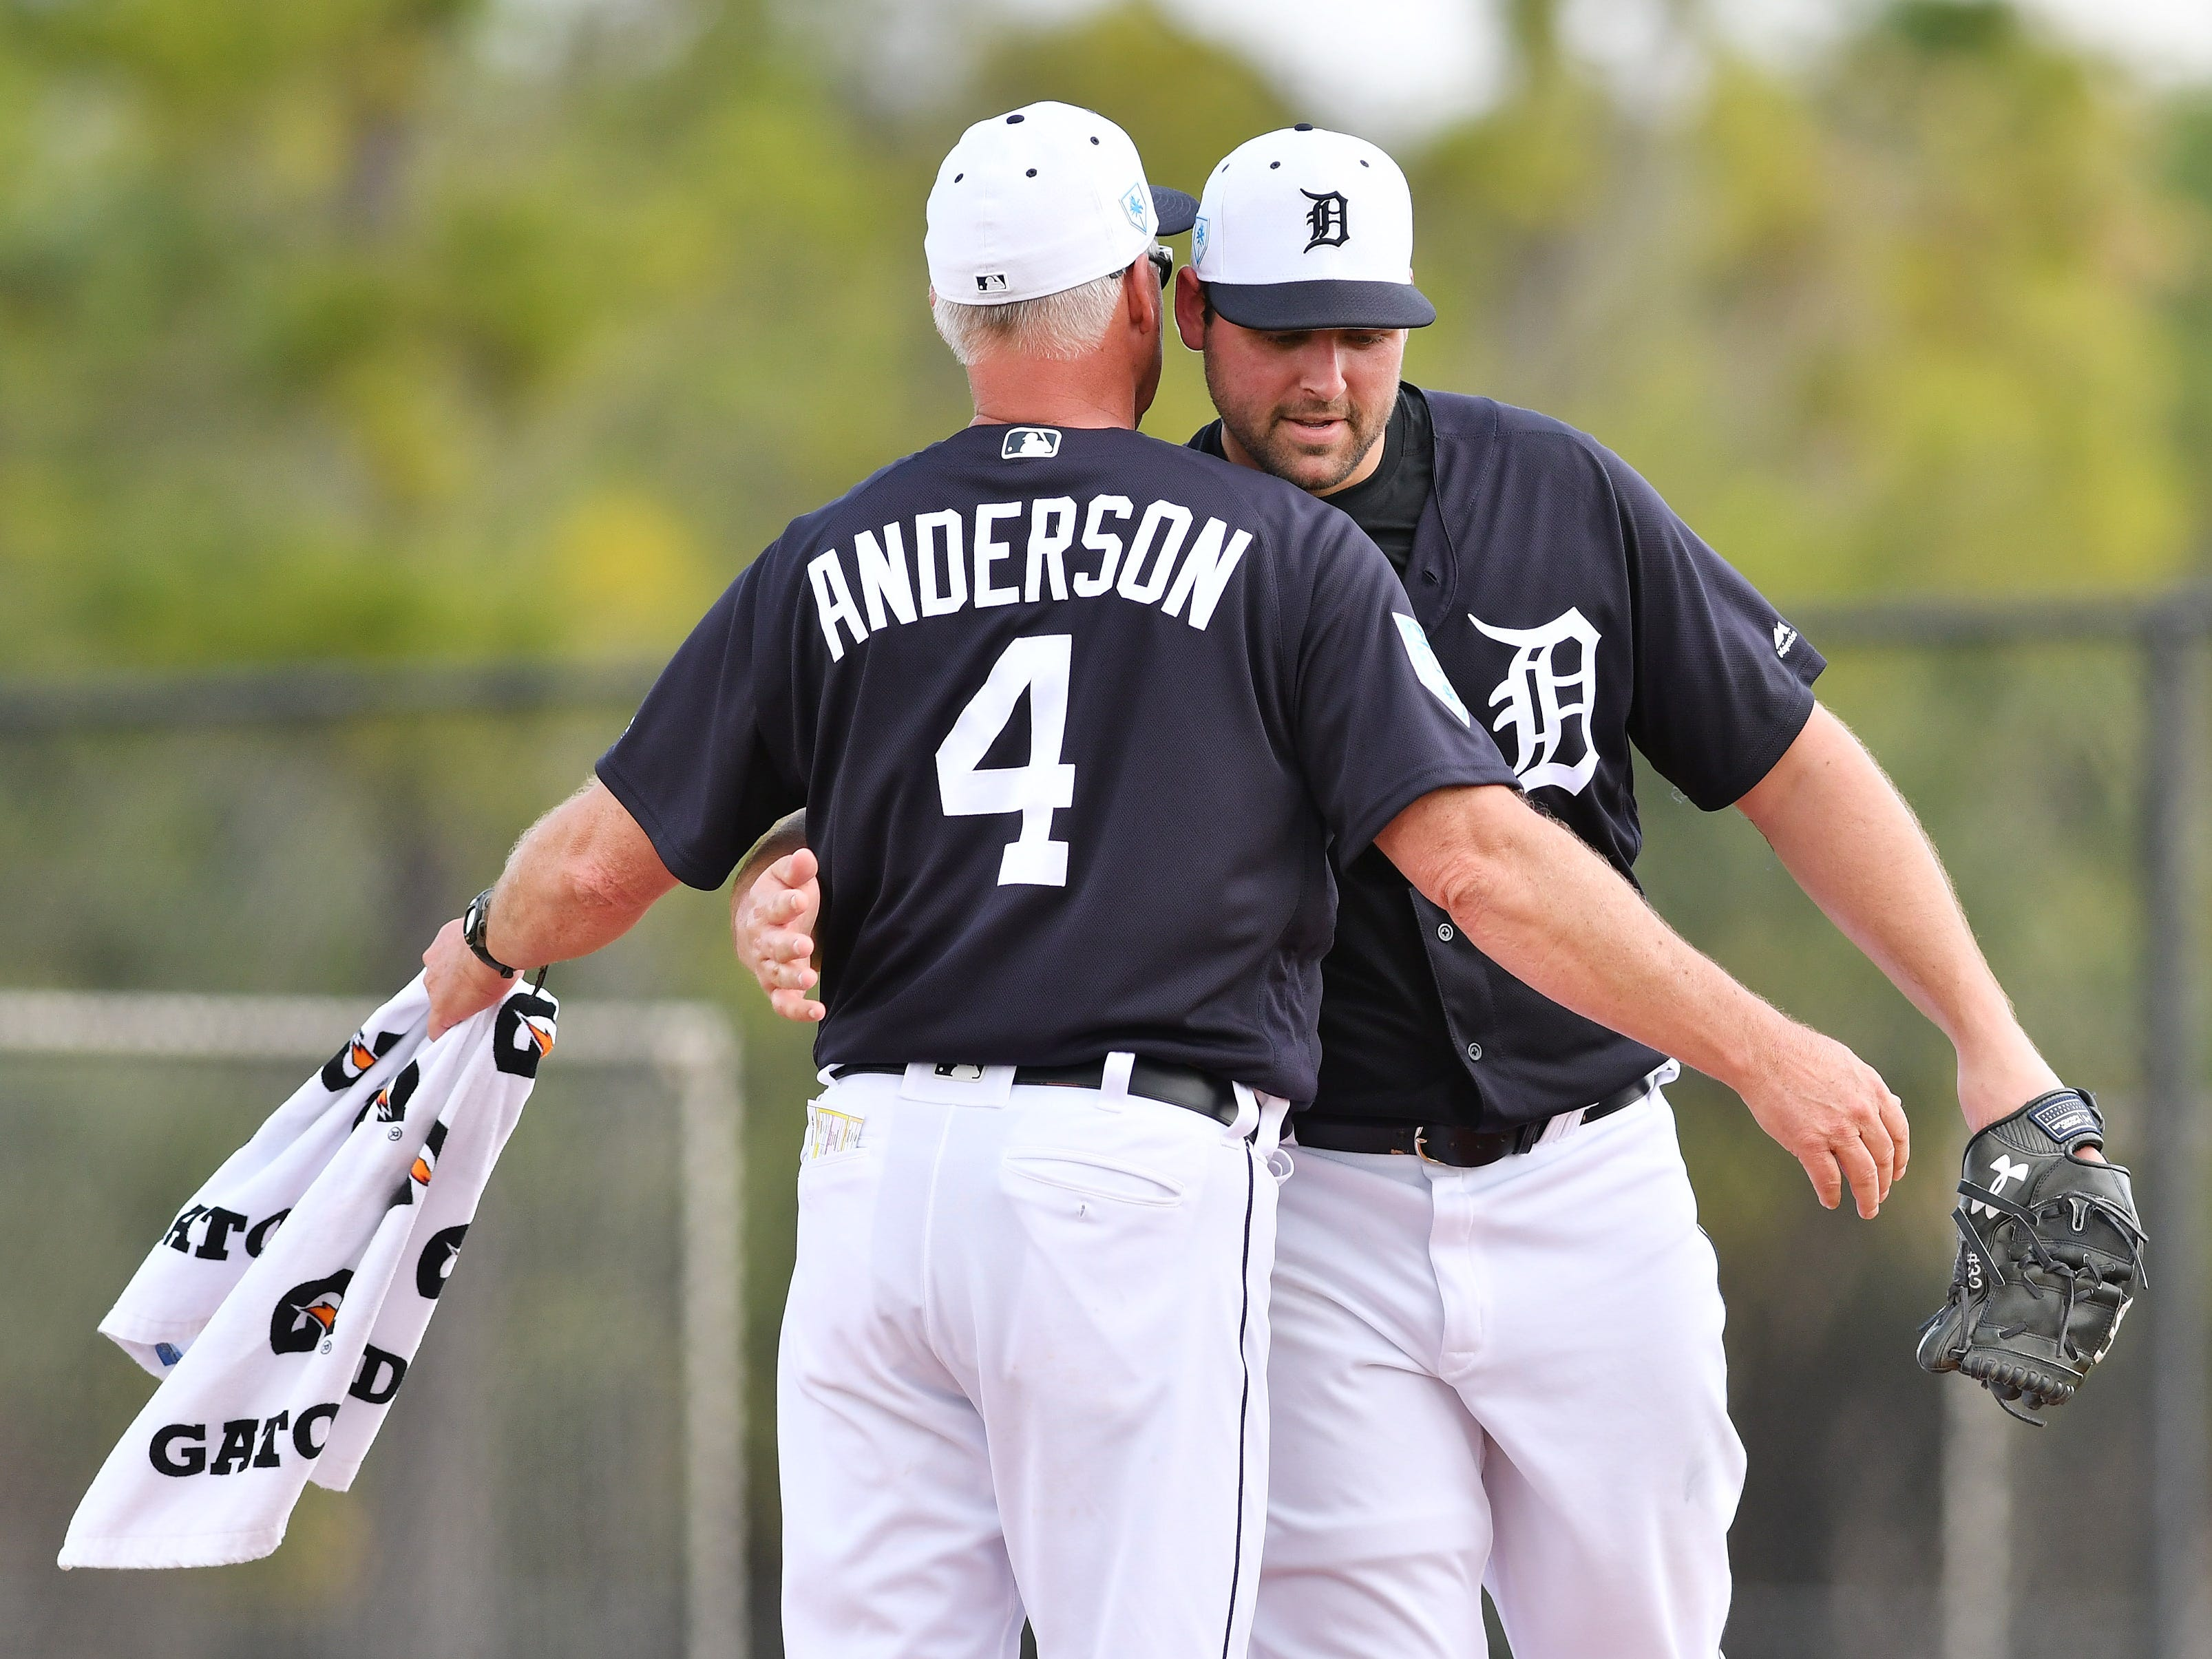 Tigers pitching coach Rick Anderson and pitcher Michael Fulmer meet after Fulmer's first live batting session.